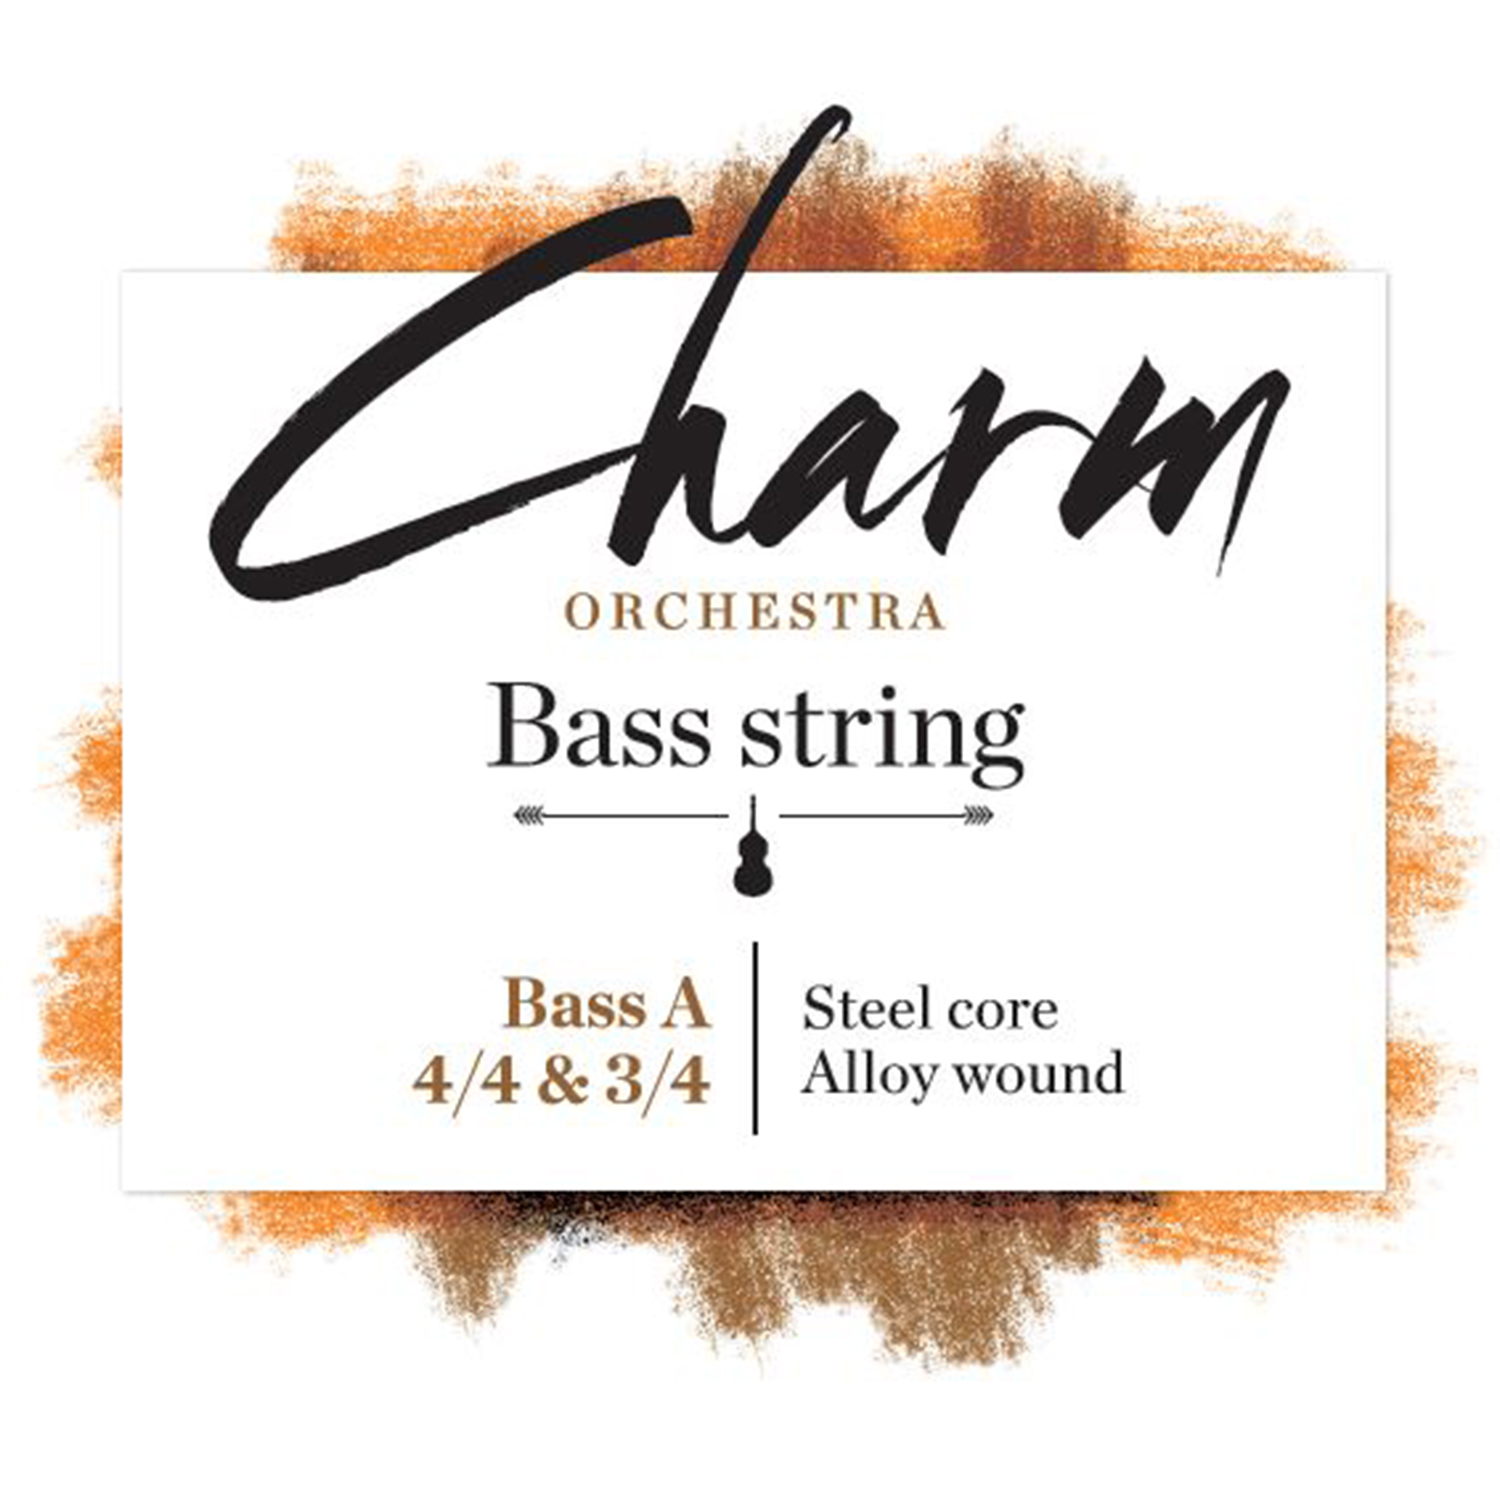 Charm Bass Orchestra 4/4 & 3/4 3.A